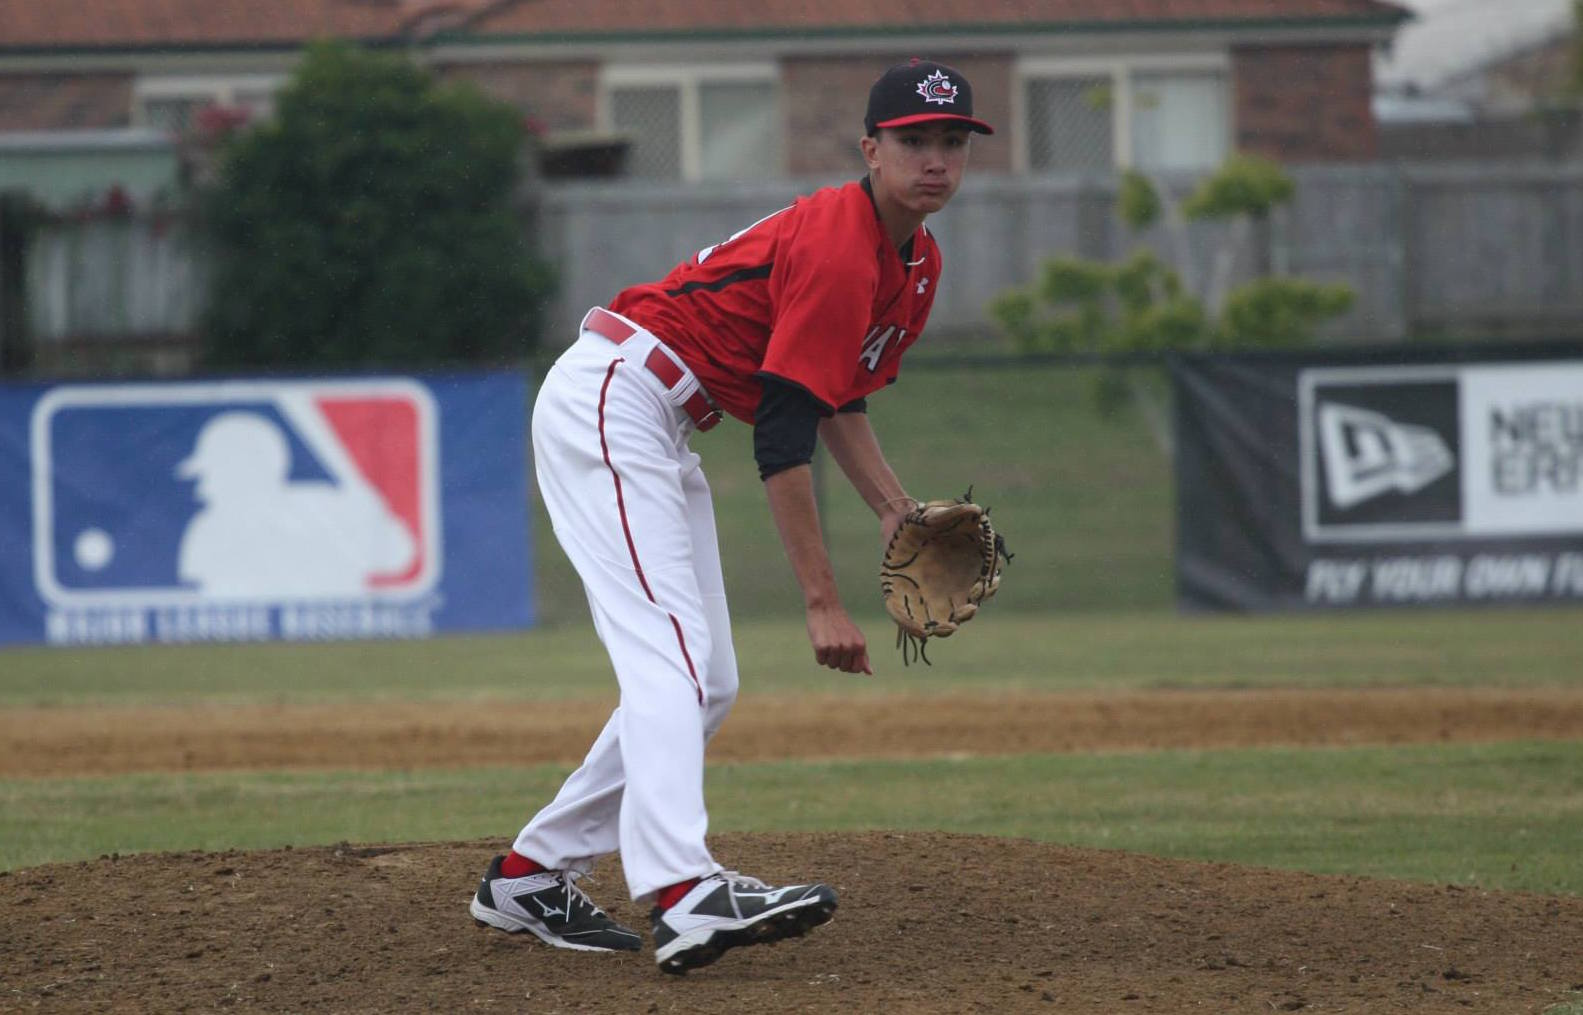 RHP William Sierra (Montréal, Que.), shown here pitching in Australia as a lead-up to last year's World 18U in Osaka, scattered two hits and struck out four over two innings as the Canuck junior knocked off Puerto Rico 11-1.